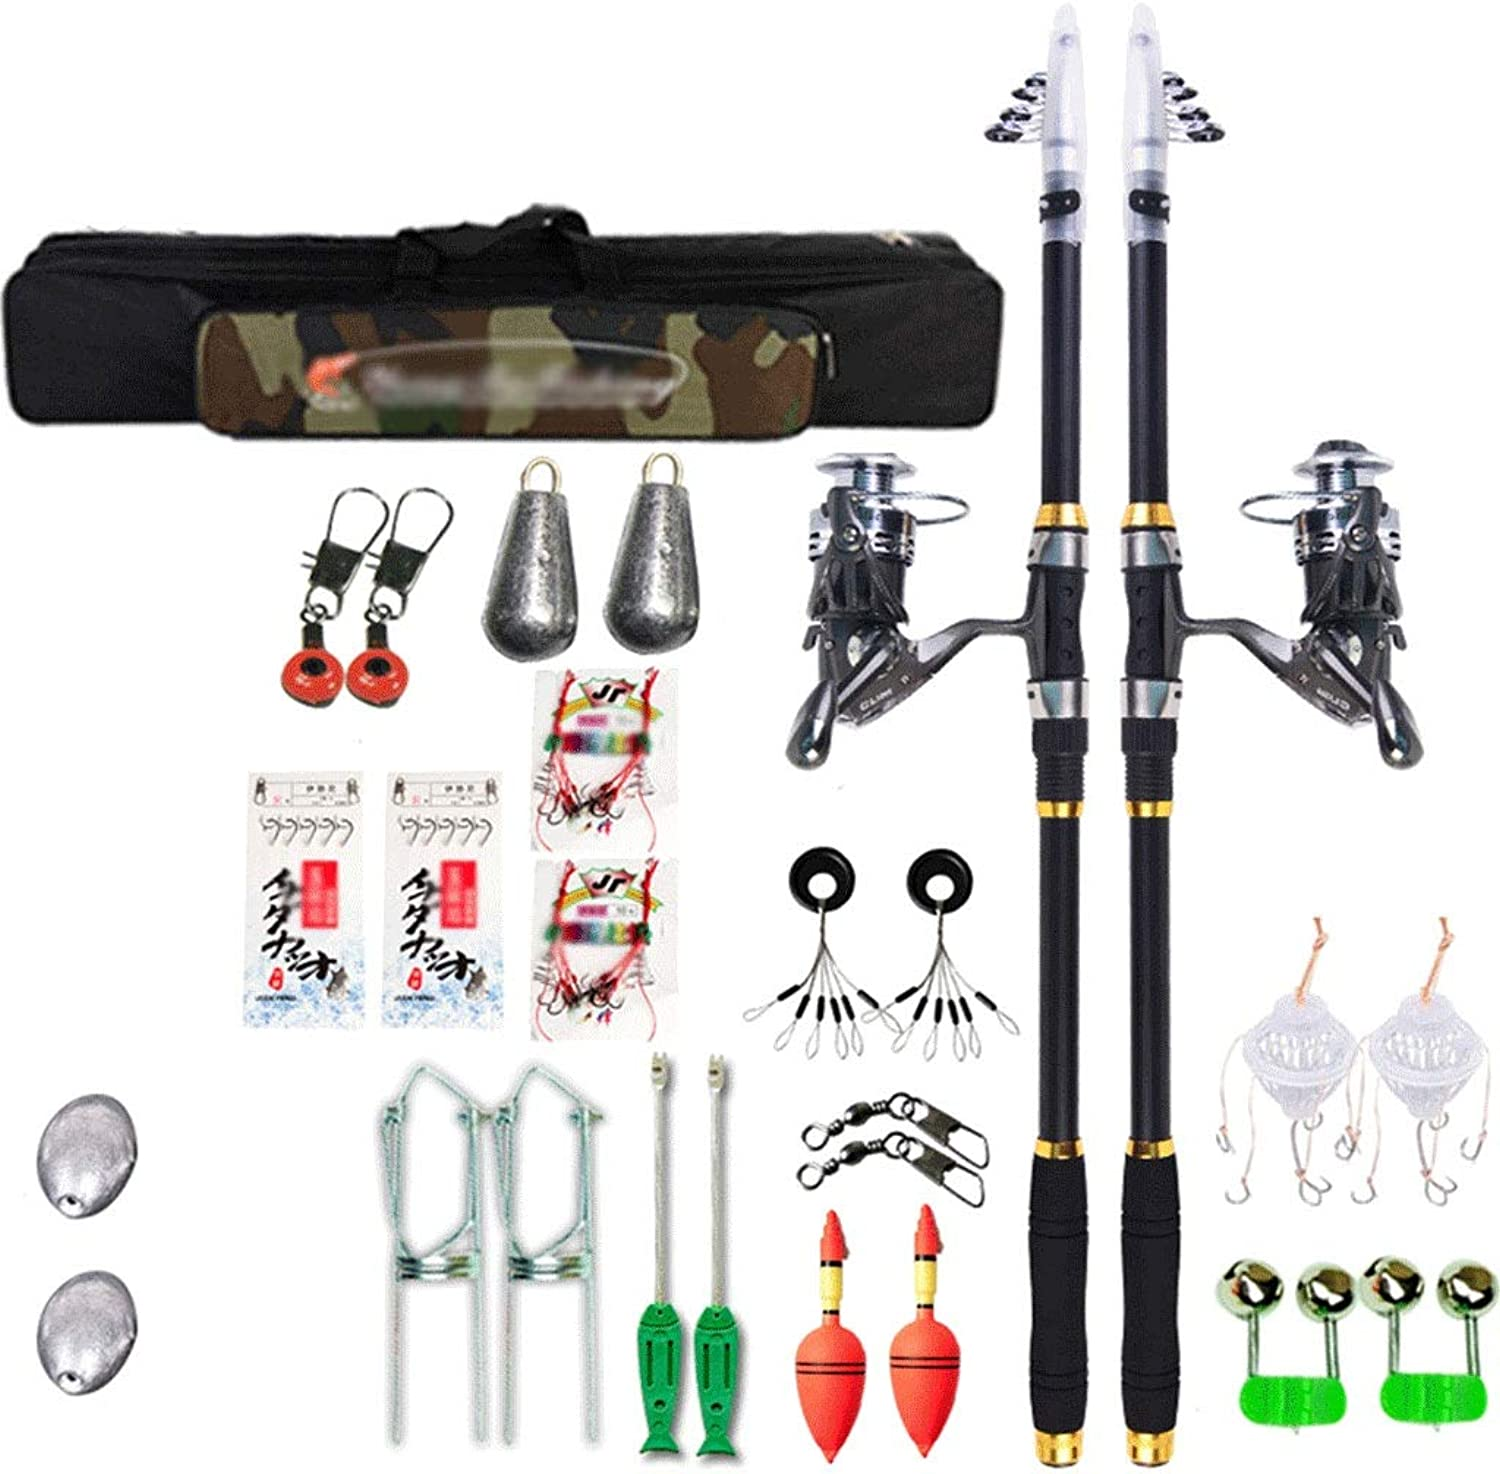 Spin Height Fiber Rods and Reel Combos Telescopic Fishing Rod with Sea Saltwater Freshwater Kit Fishing Rod Kit2 Pack